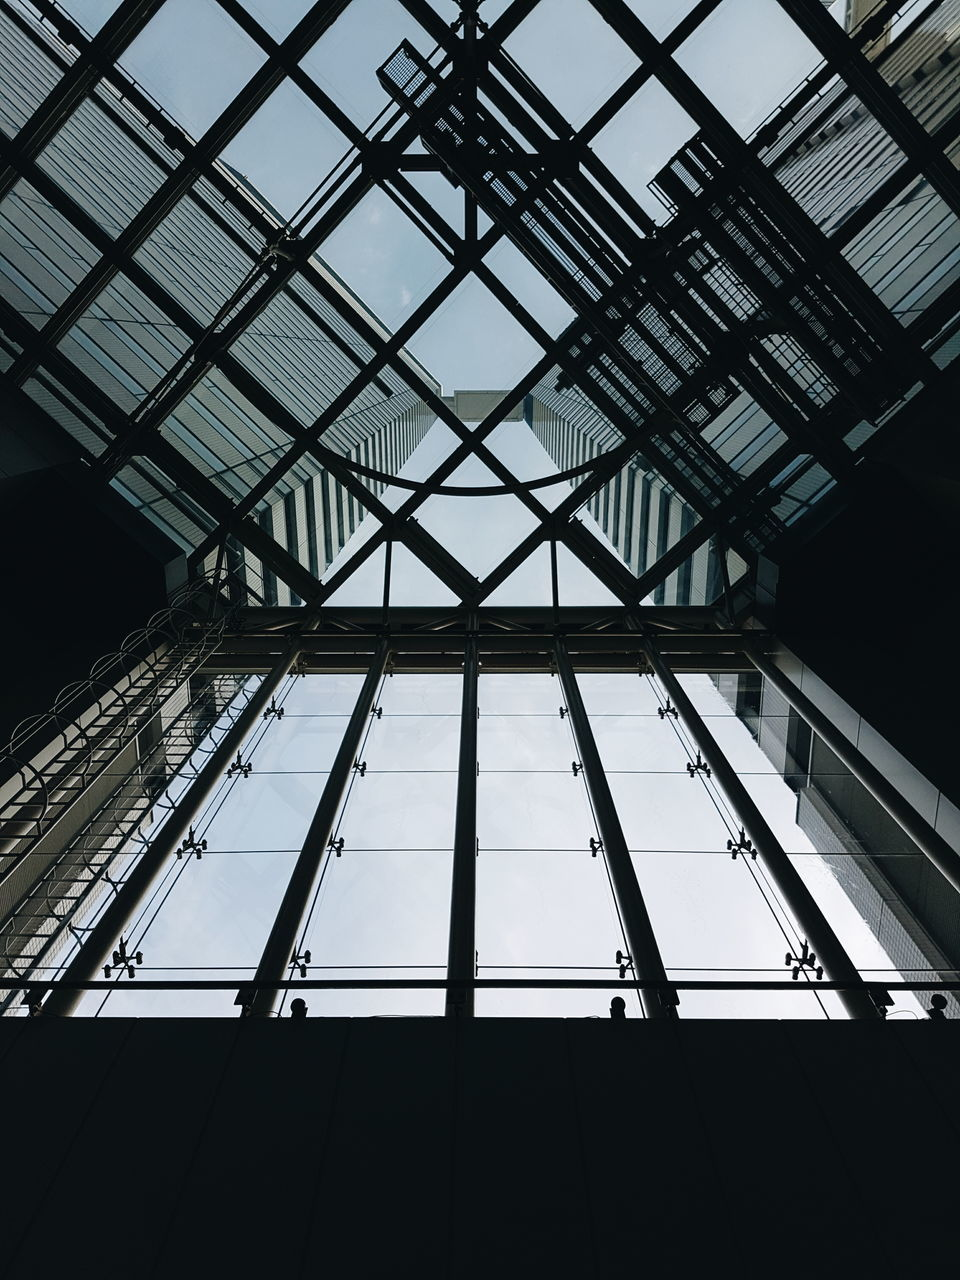 Low Angle View Of Building Through Glass Ceiling